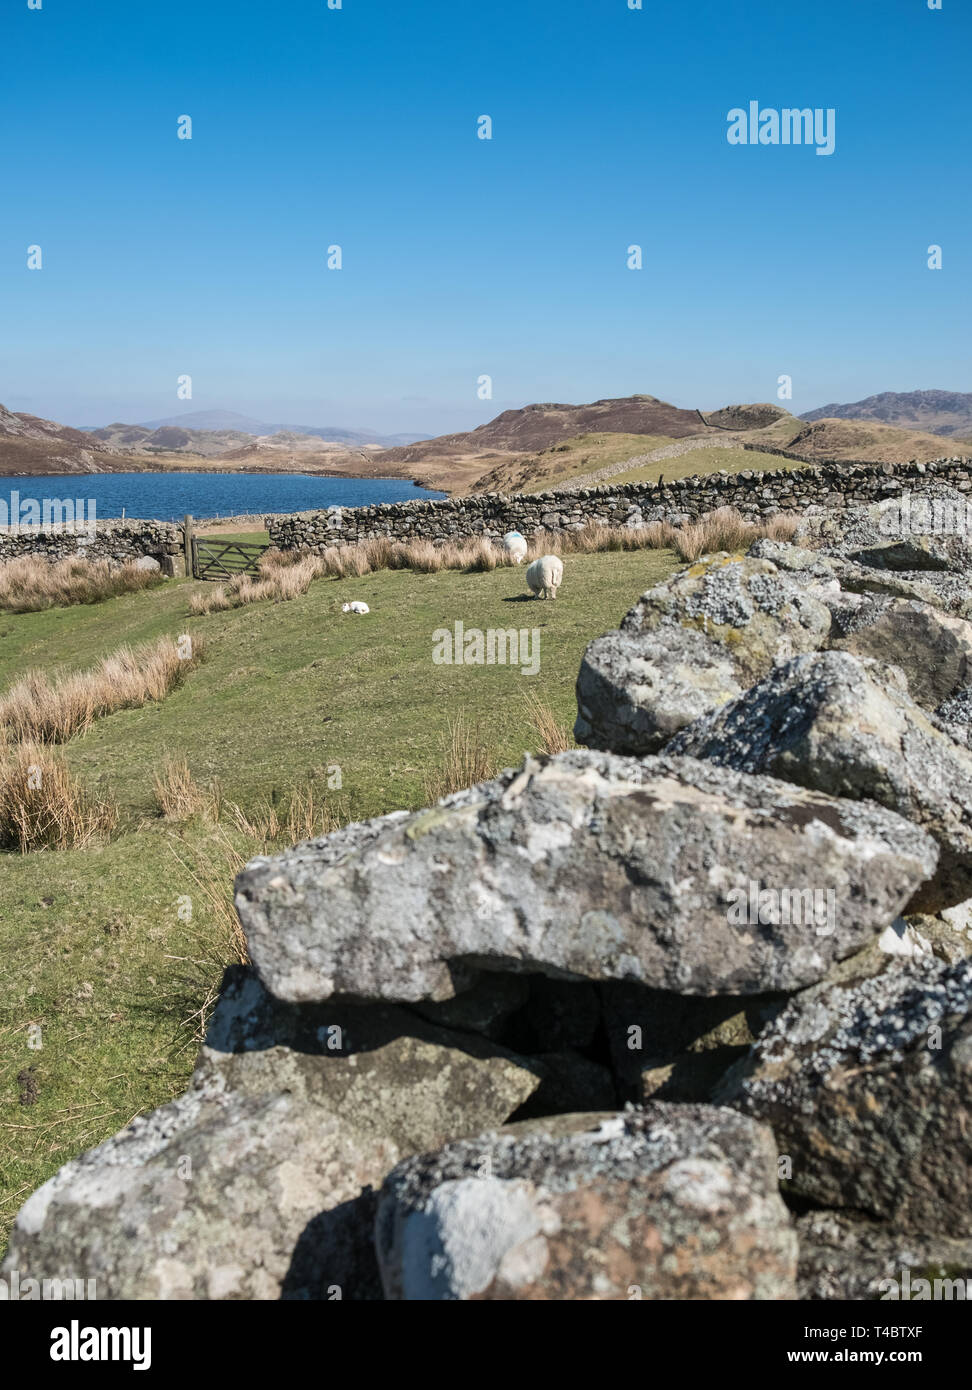 Scenic view at Cregennan Lakes, in the southern section of Snowdonia National Park, Gwynedd, Wales, UK Stock Photo